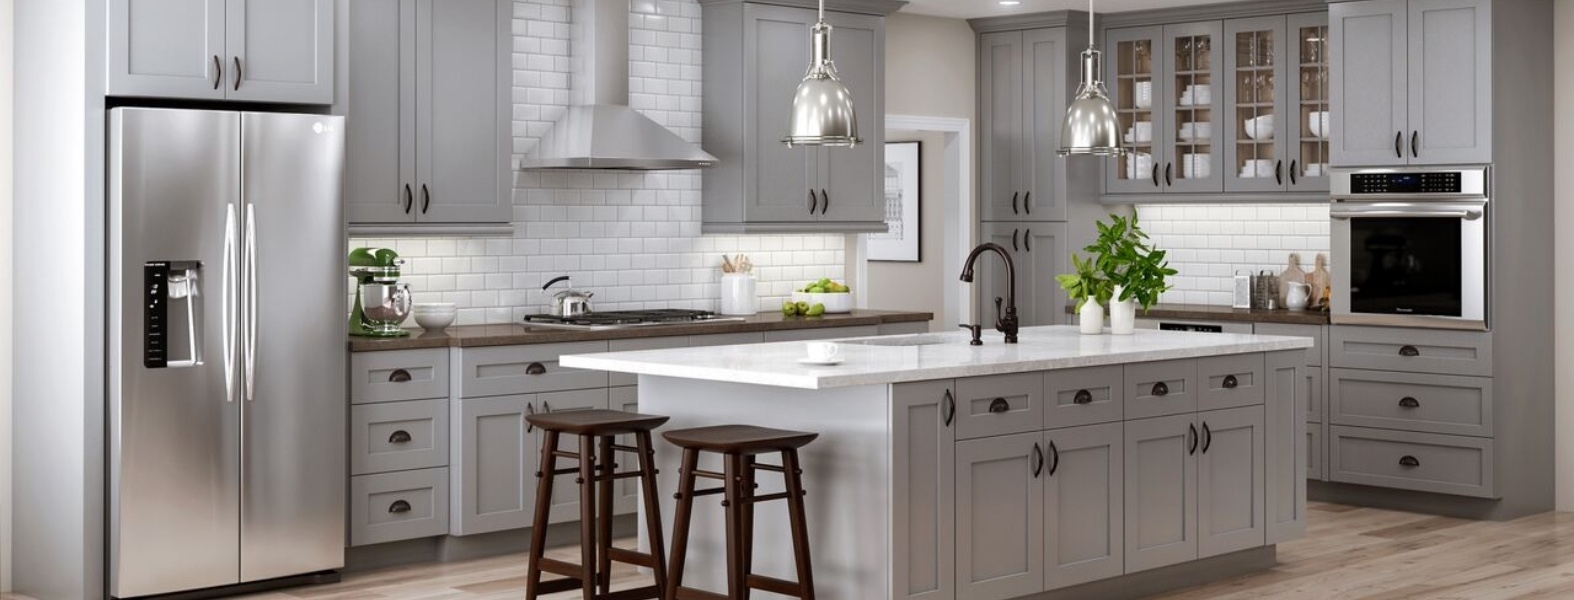 Kitchen Cabinets For Cheap Near Me - Kitchen and Bath